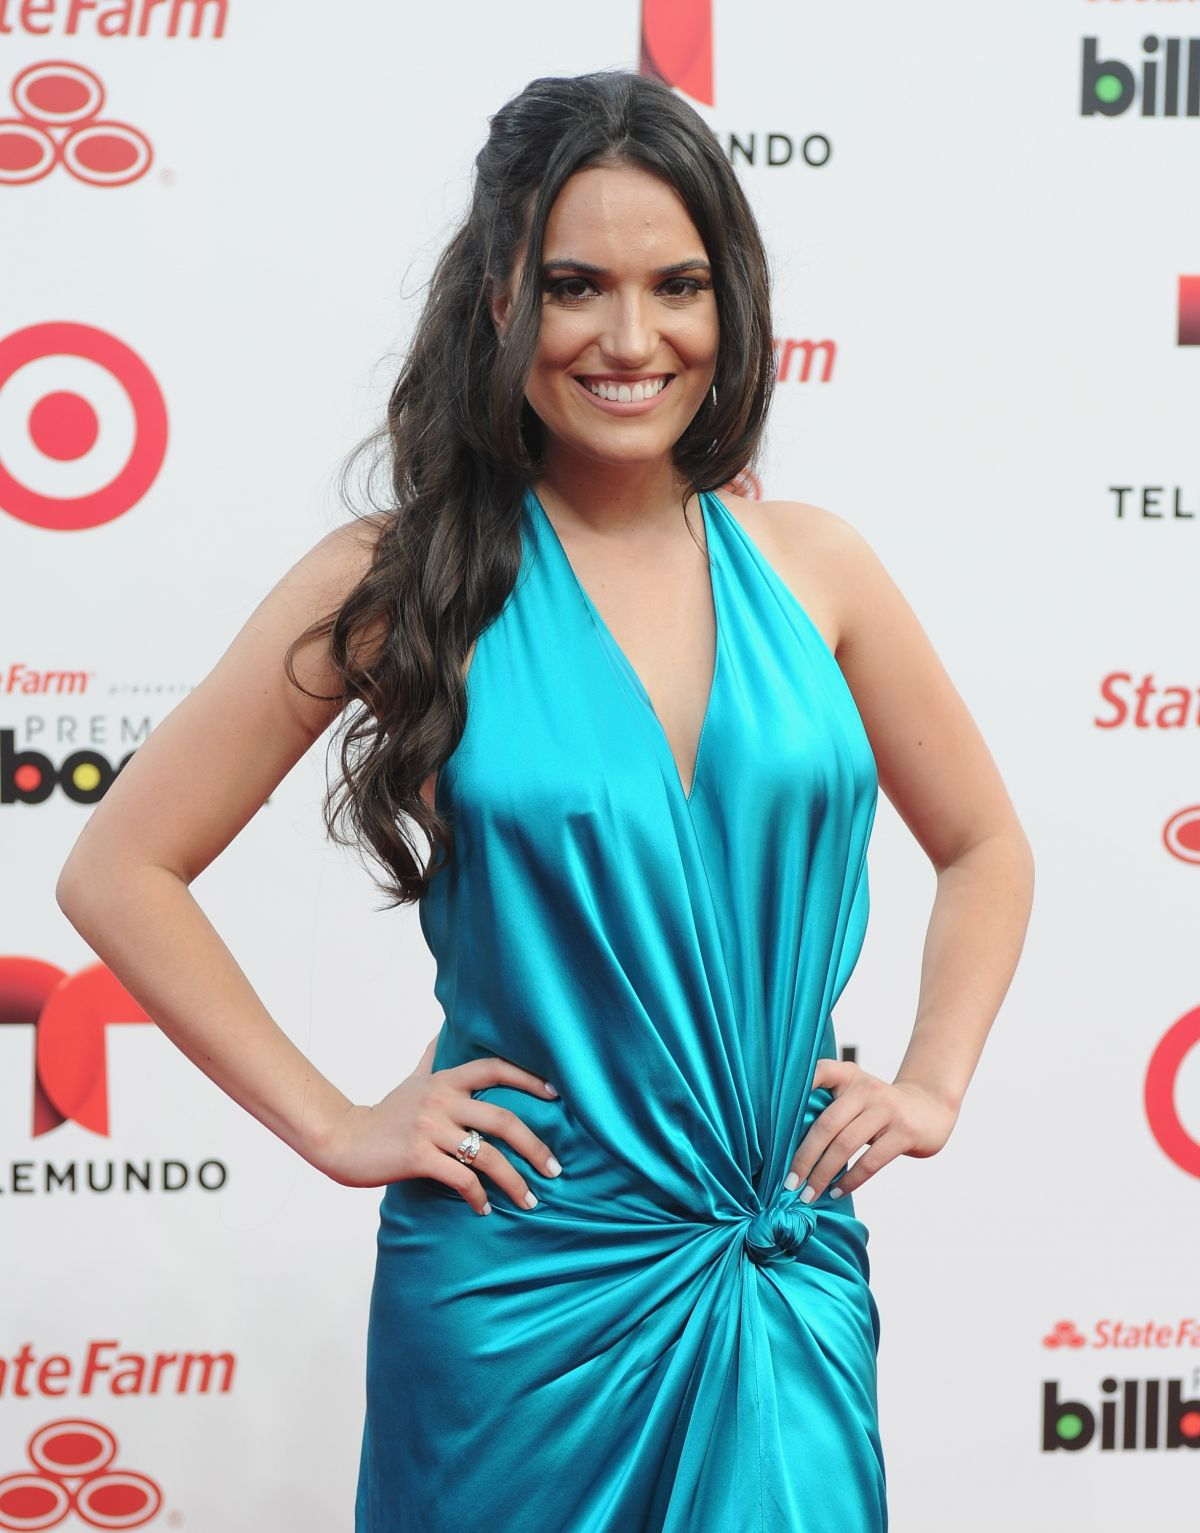 DANIELA MACIAS at 2014 Billboard Latin Music Awards in Miami